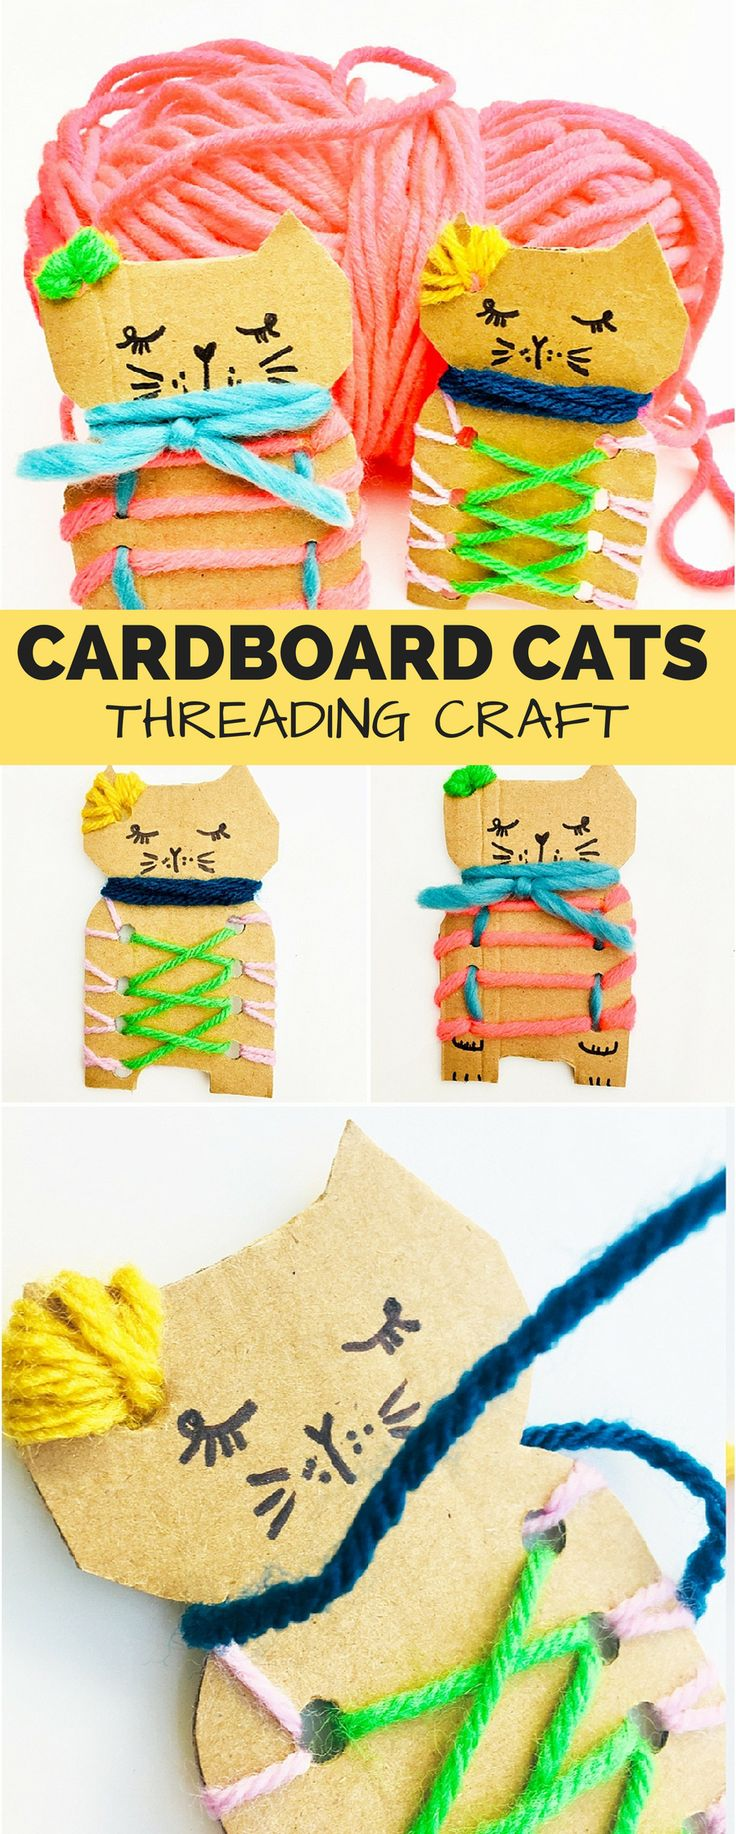 Cardboard Cat Threading Craft. Cute recycled craft for kids and great for practicing fine motor skills. #kidcrafts #kidsart #recycledcraft